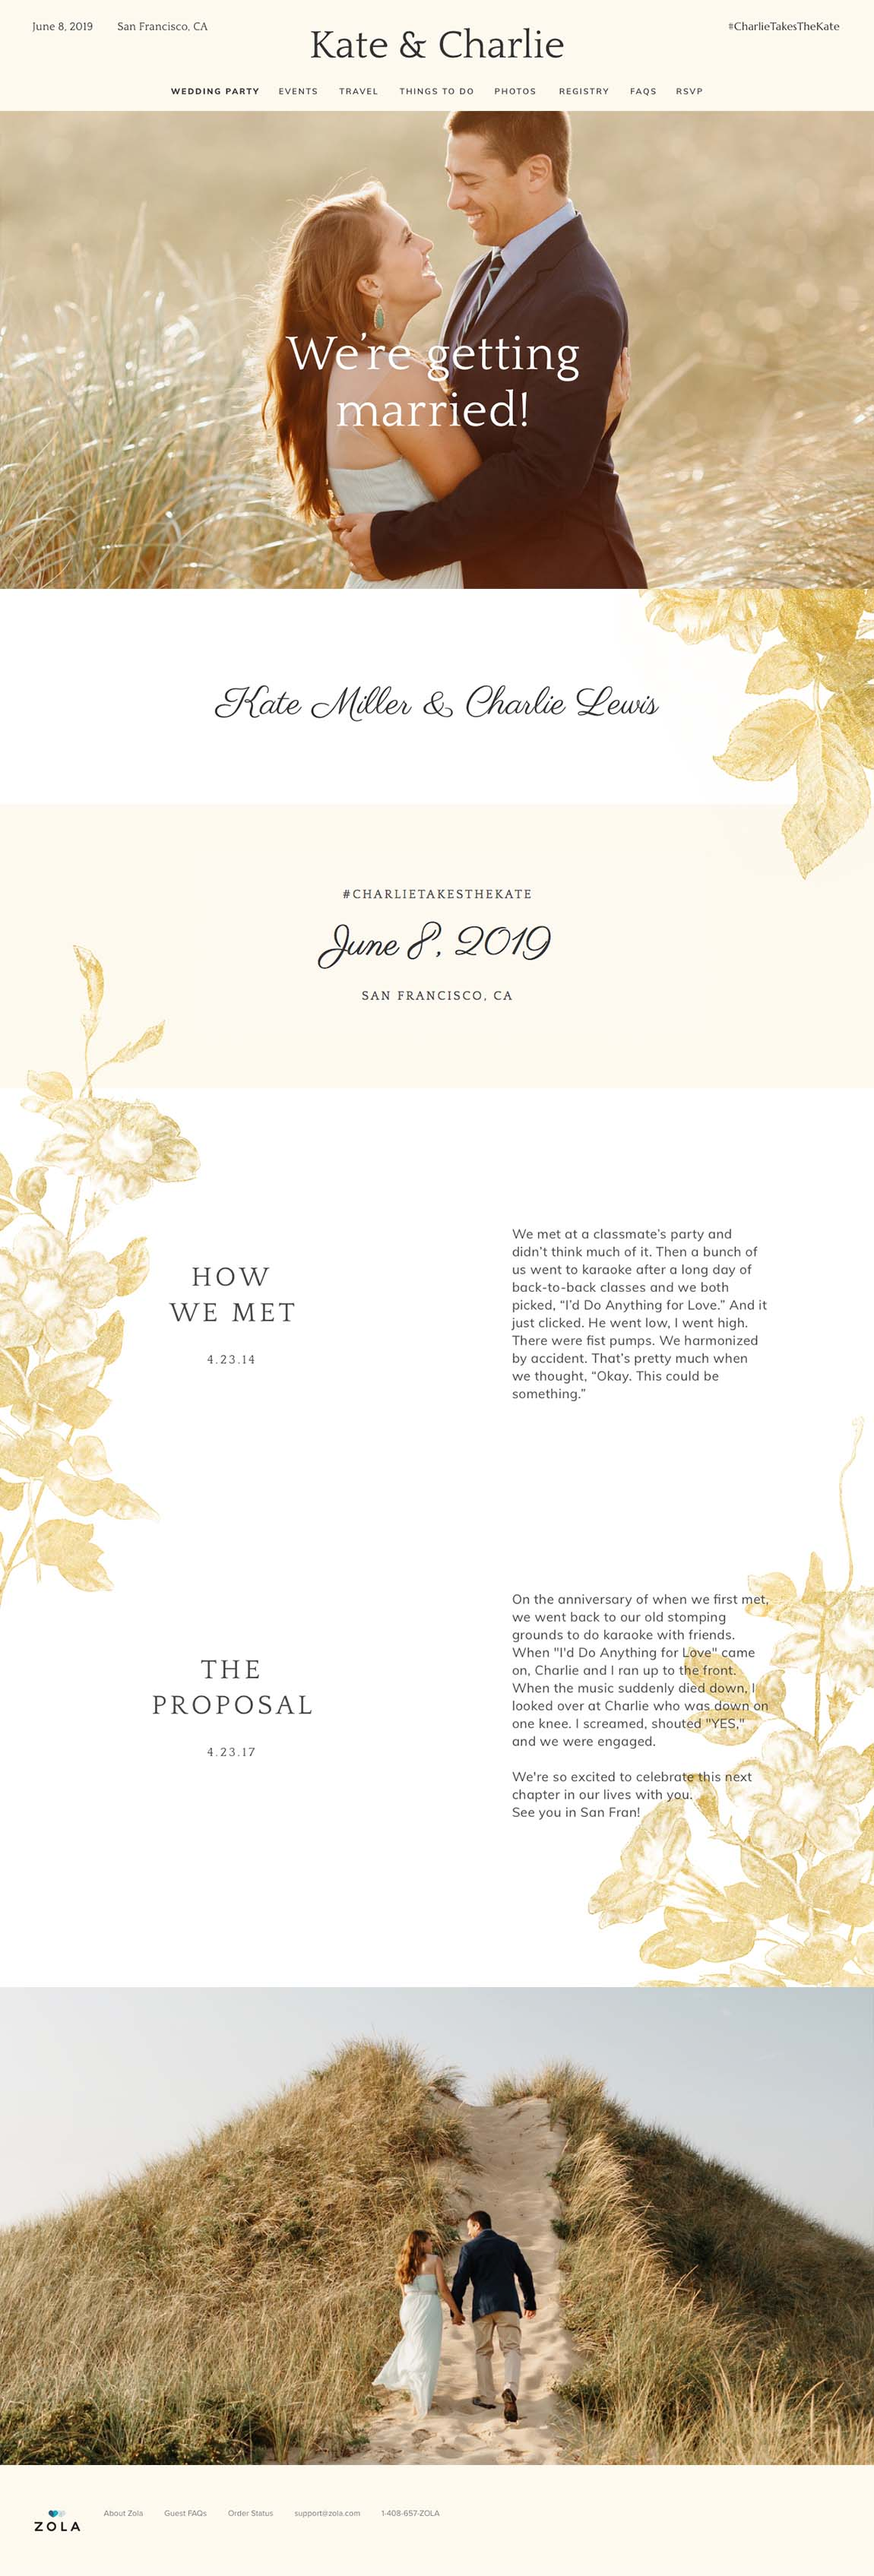 Free Wedding Website Templates- Heaven  Zola